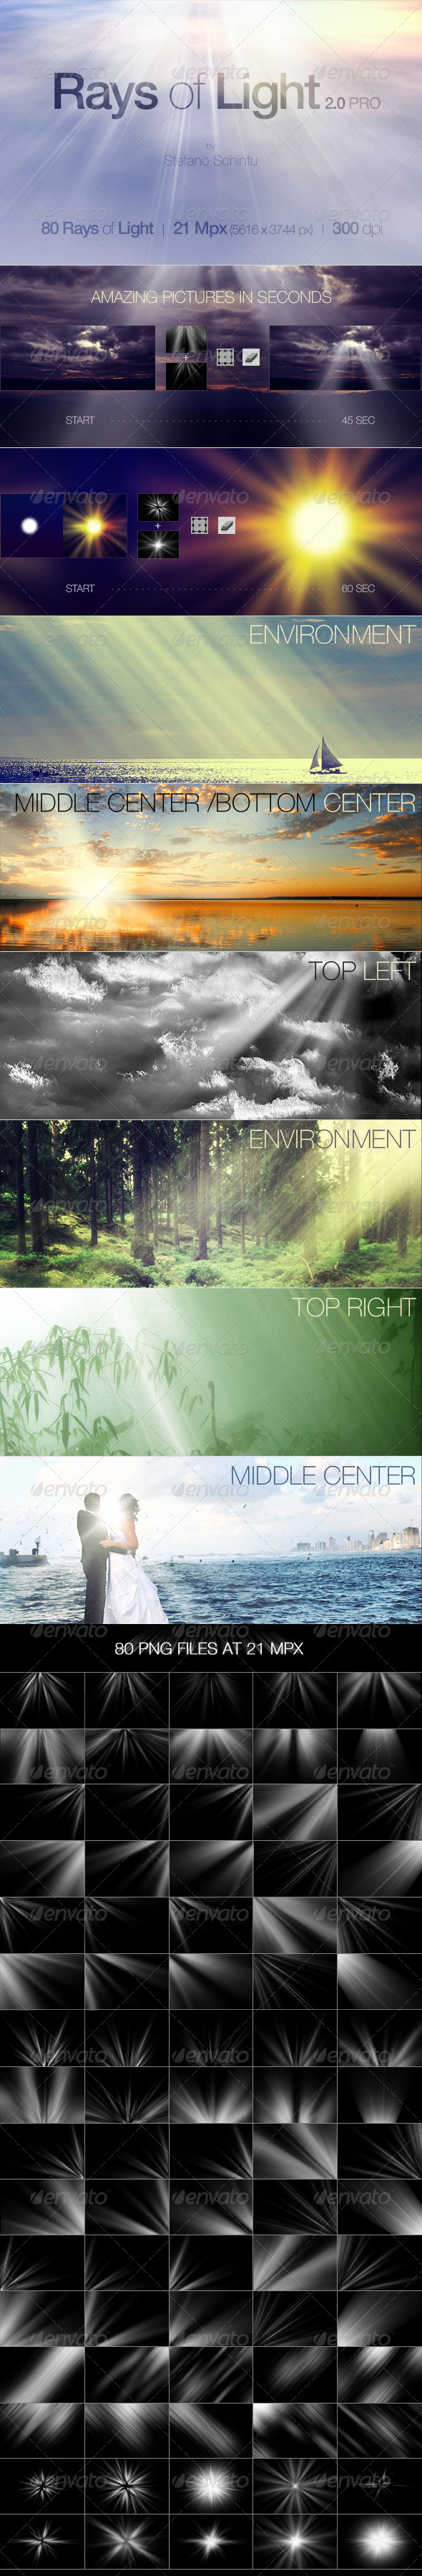 Ray of Light v2.0 PRO + Sun Action Bundle - Graphics